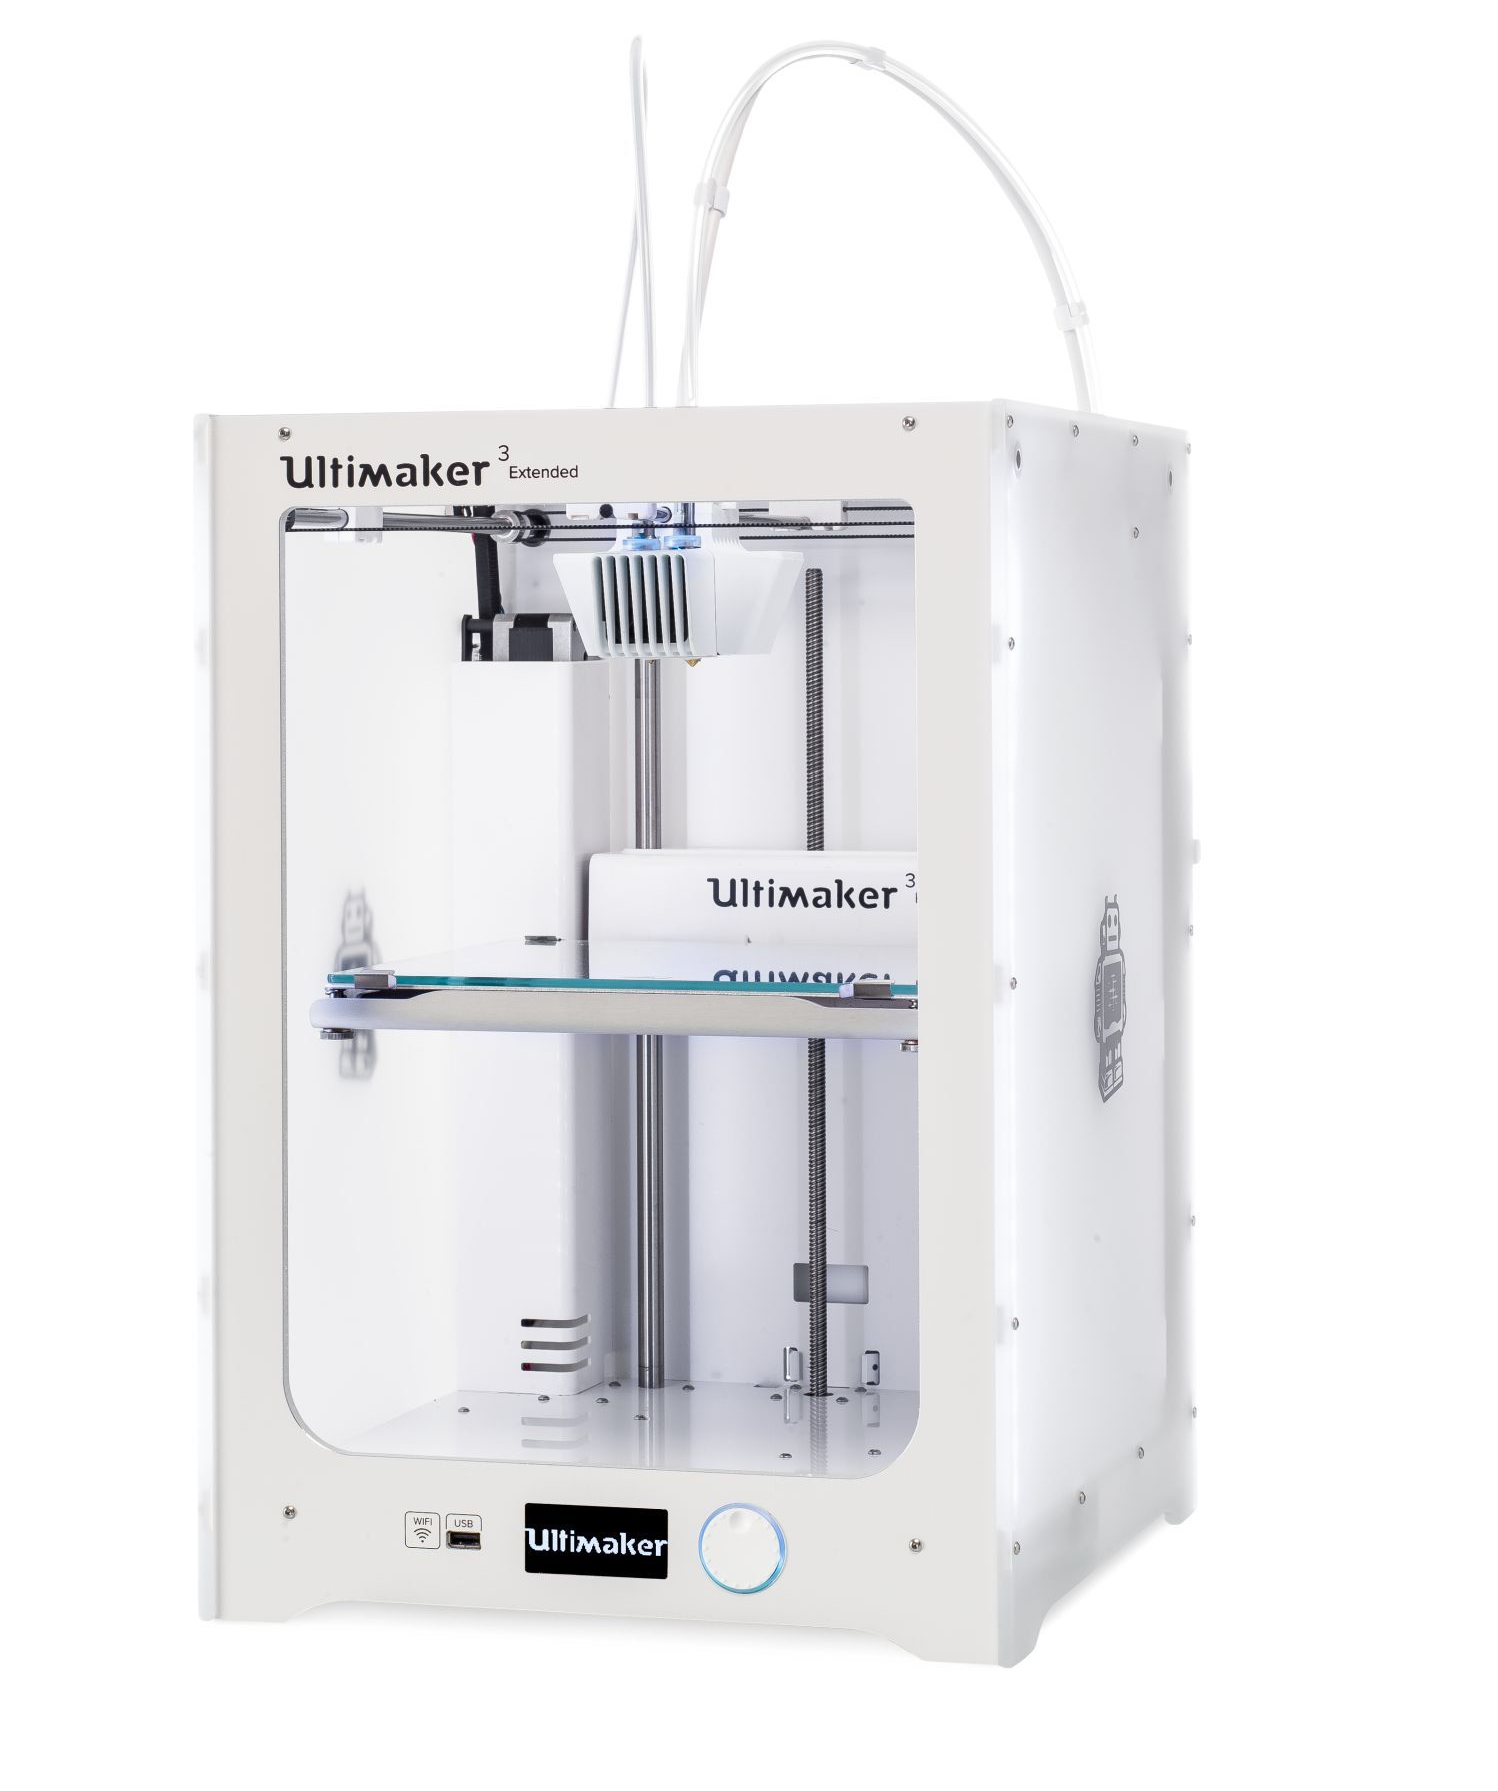 ultimaker 3 extended 3d printers